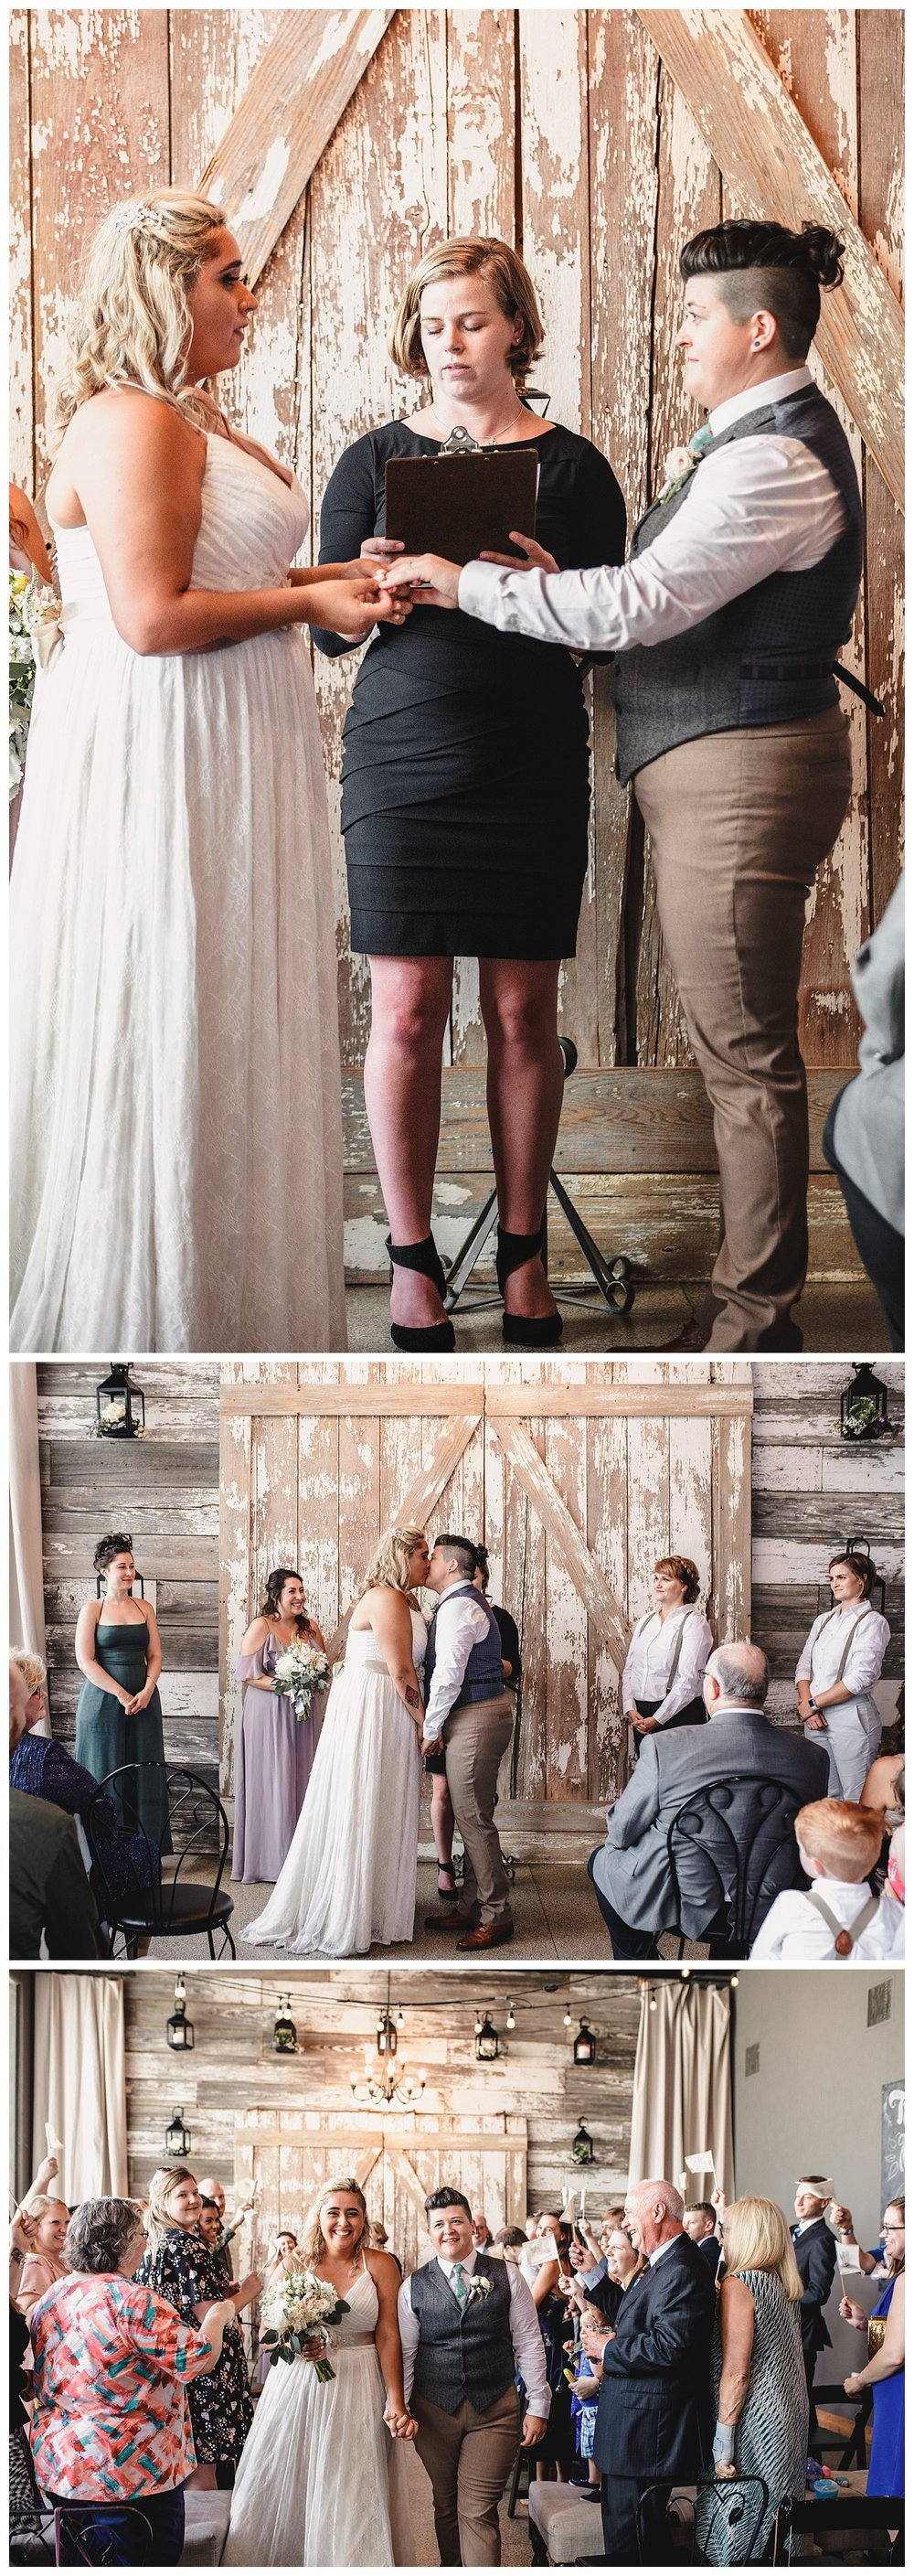 Kelsey_Diane_Photography_The_Vow_Exchange_Kansas_City_LGBT_Friendly_Wedding_Photographer_Kansas_City_Scout_Ica_0740.jpg